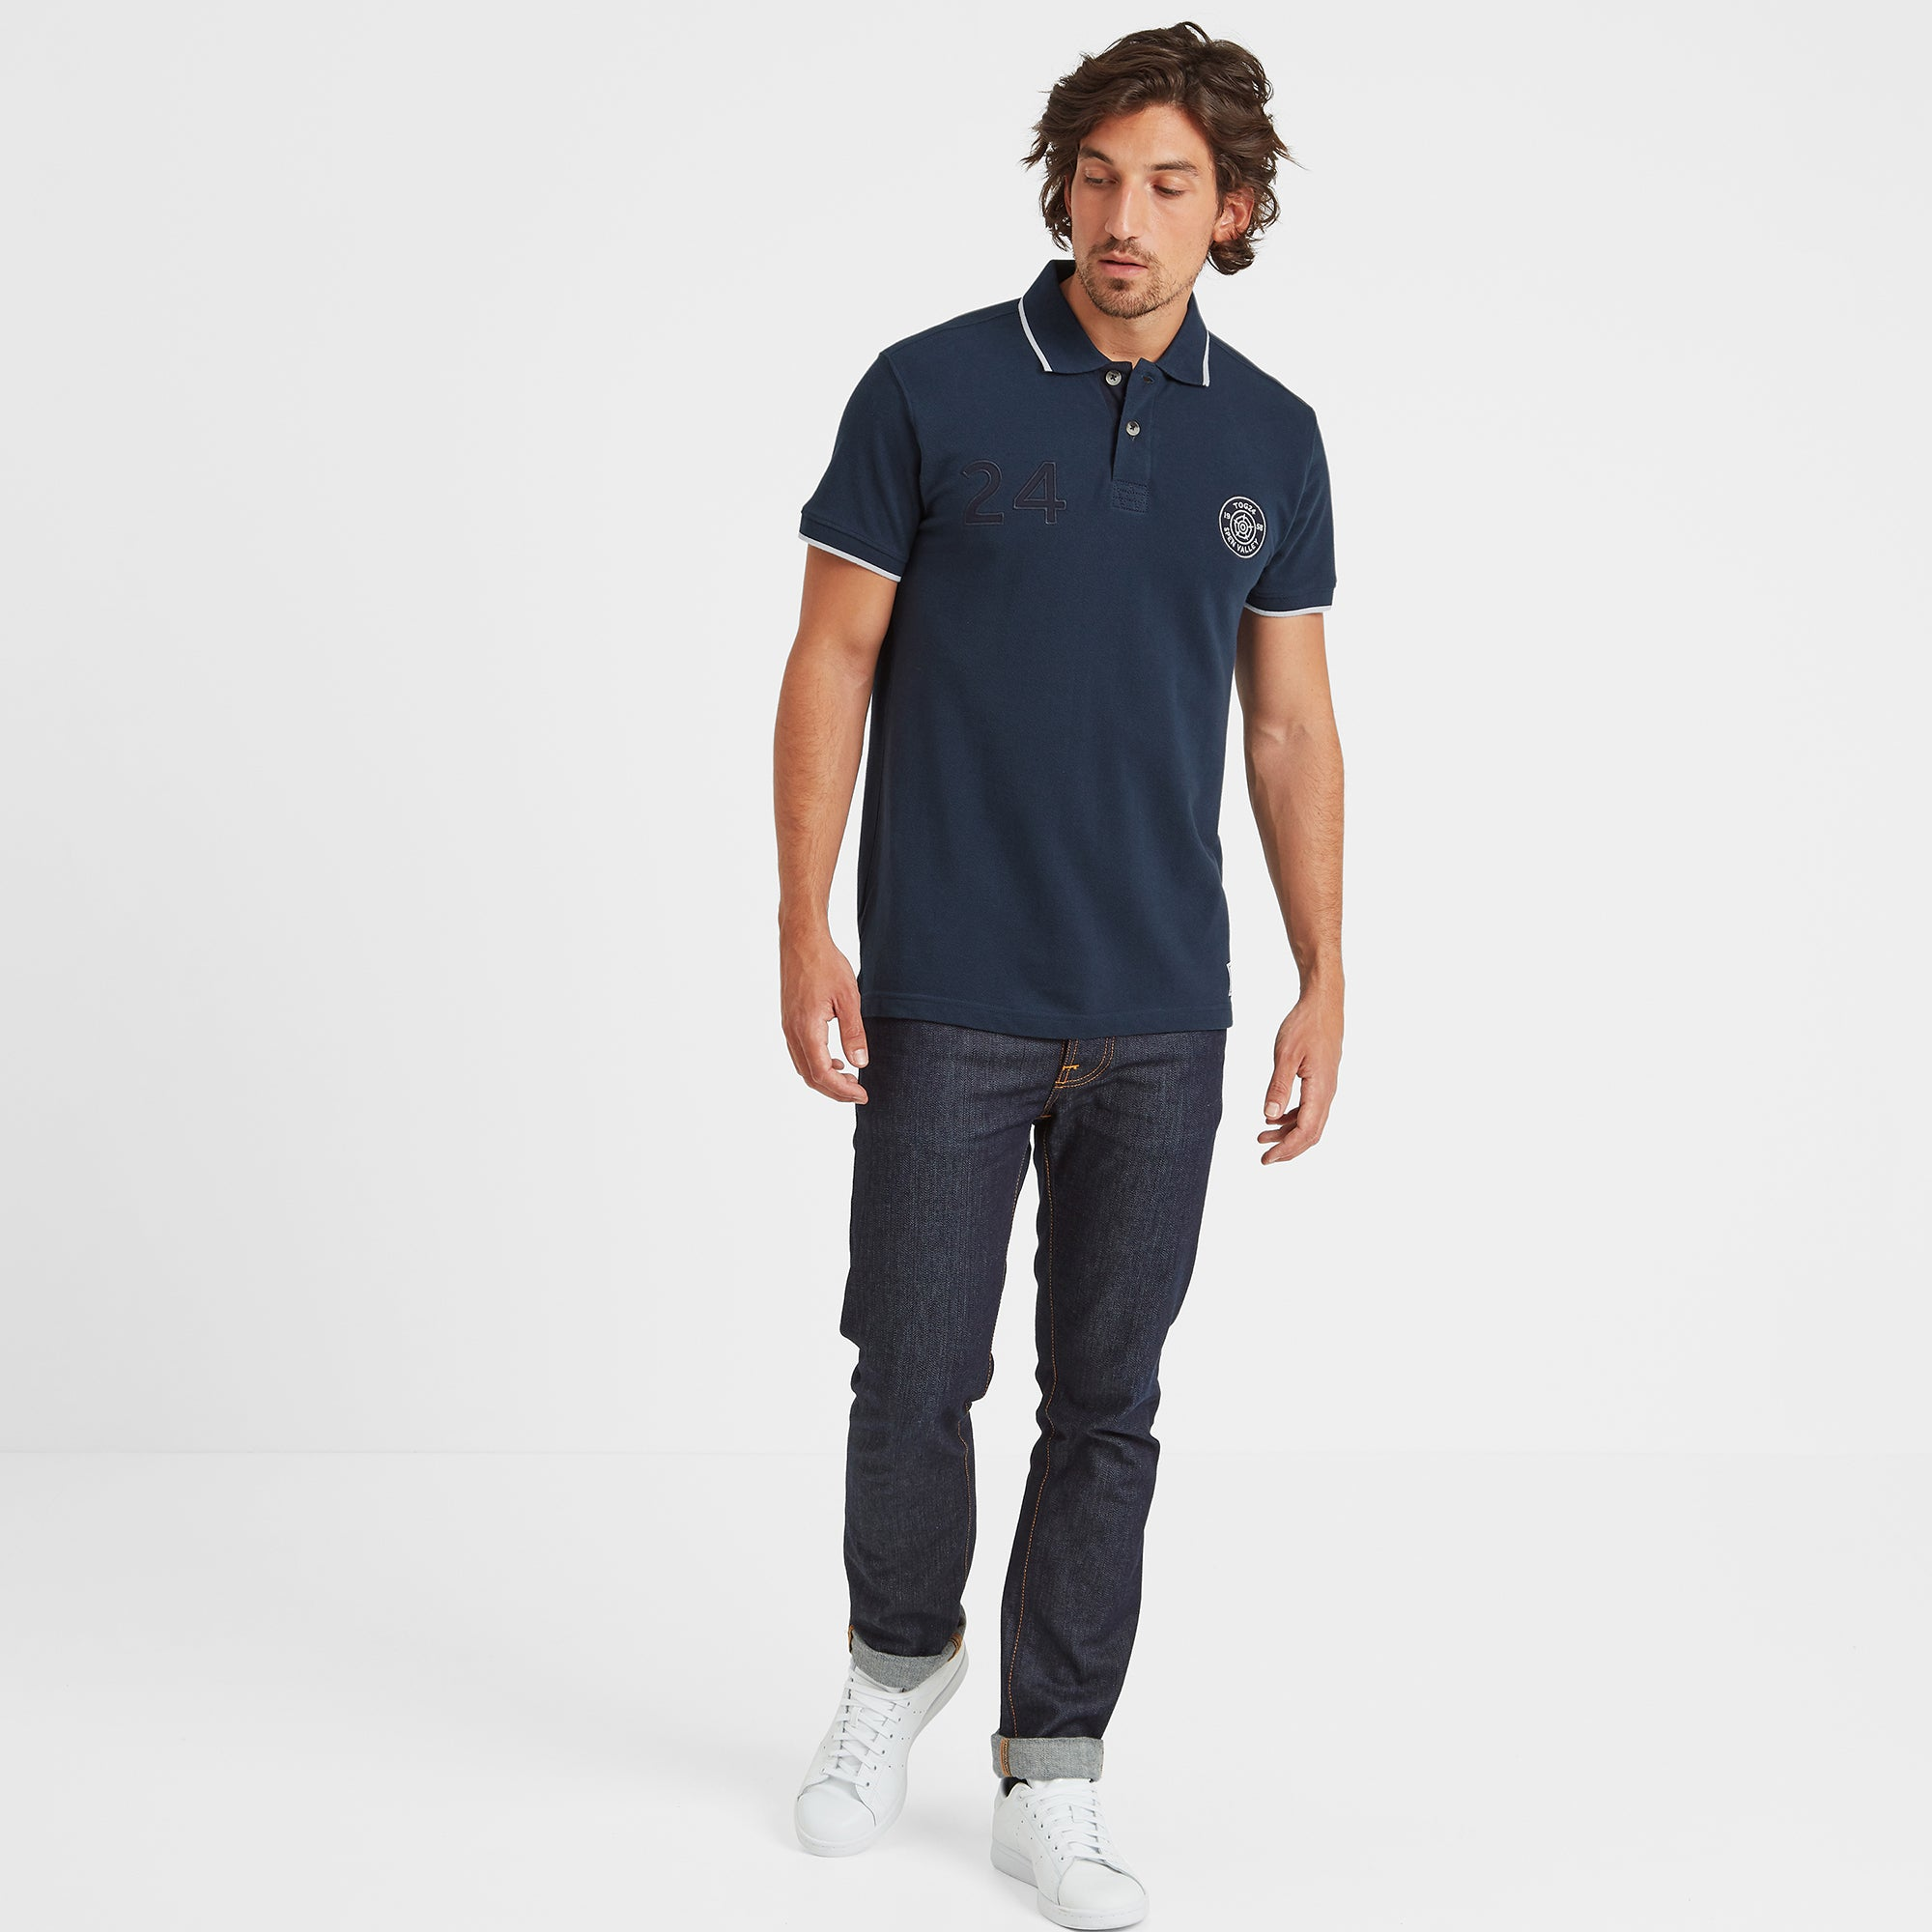 Hebble Mens Pique Polo Shirt - Naval Blue